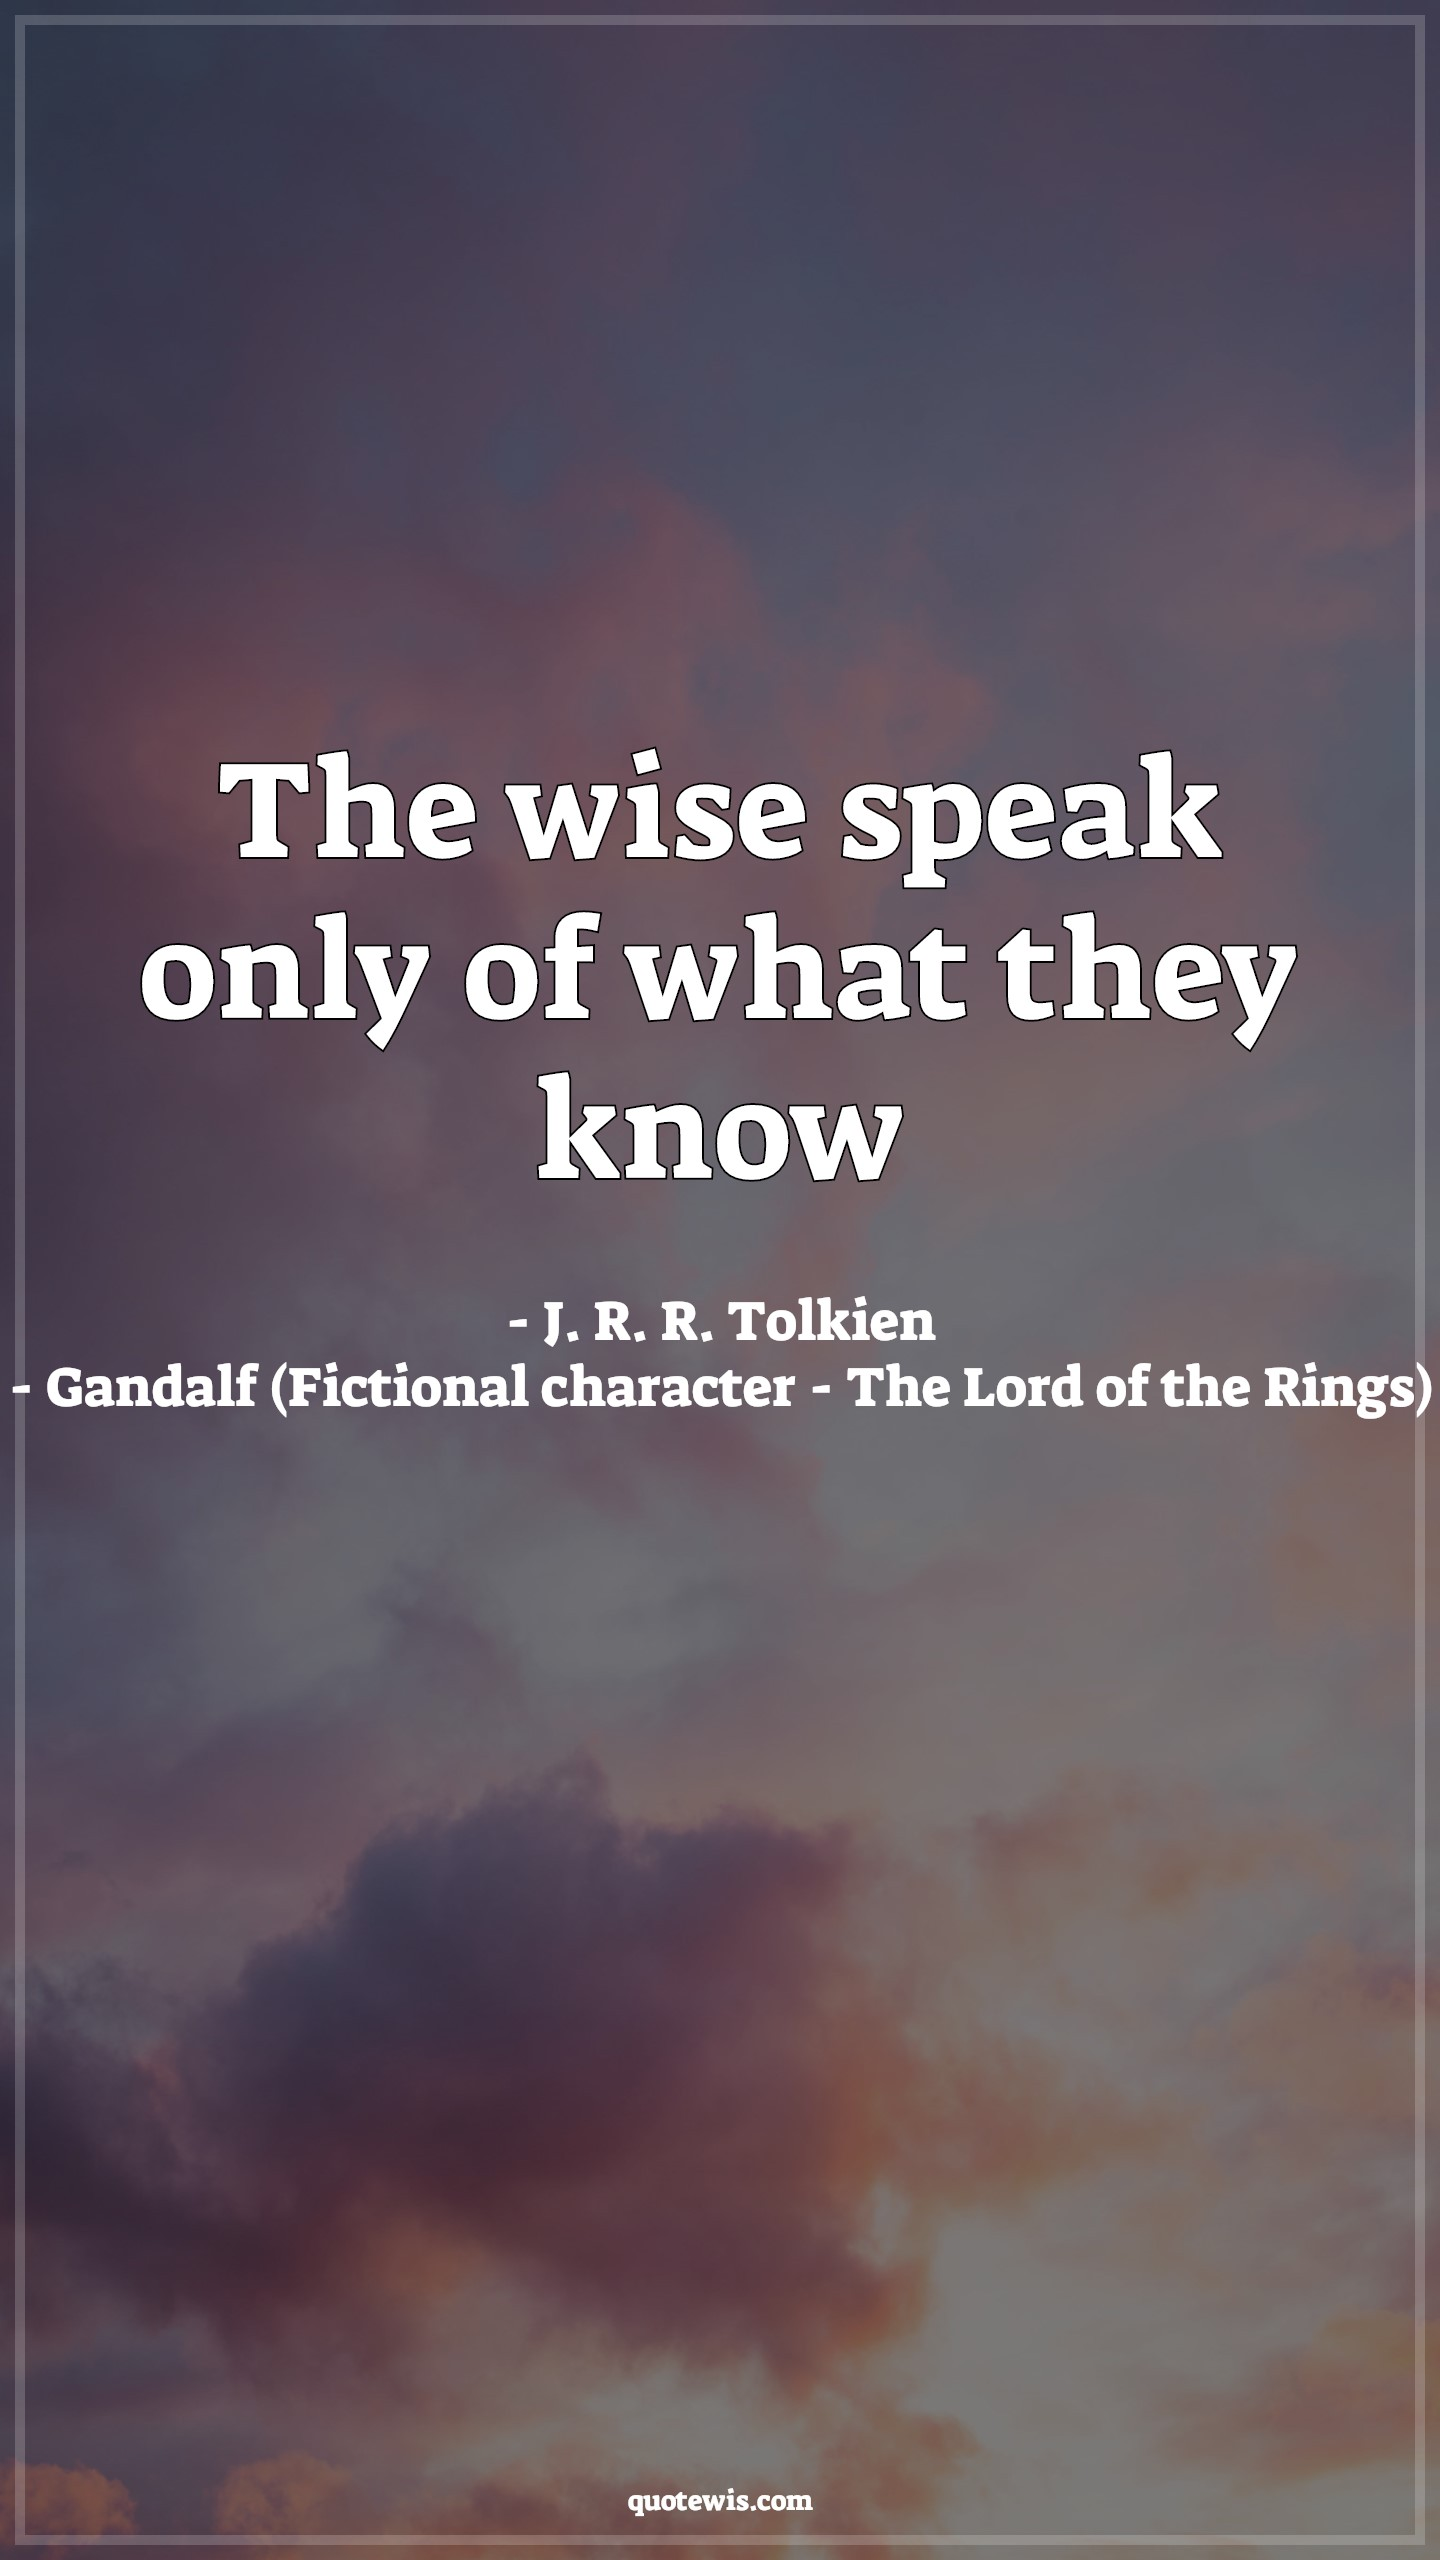 The wise speak only of what they know